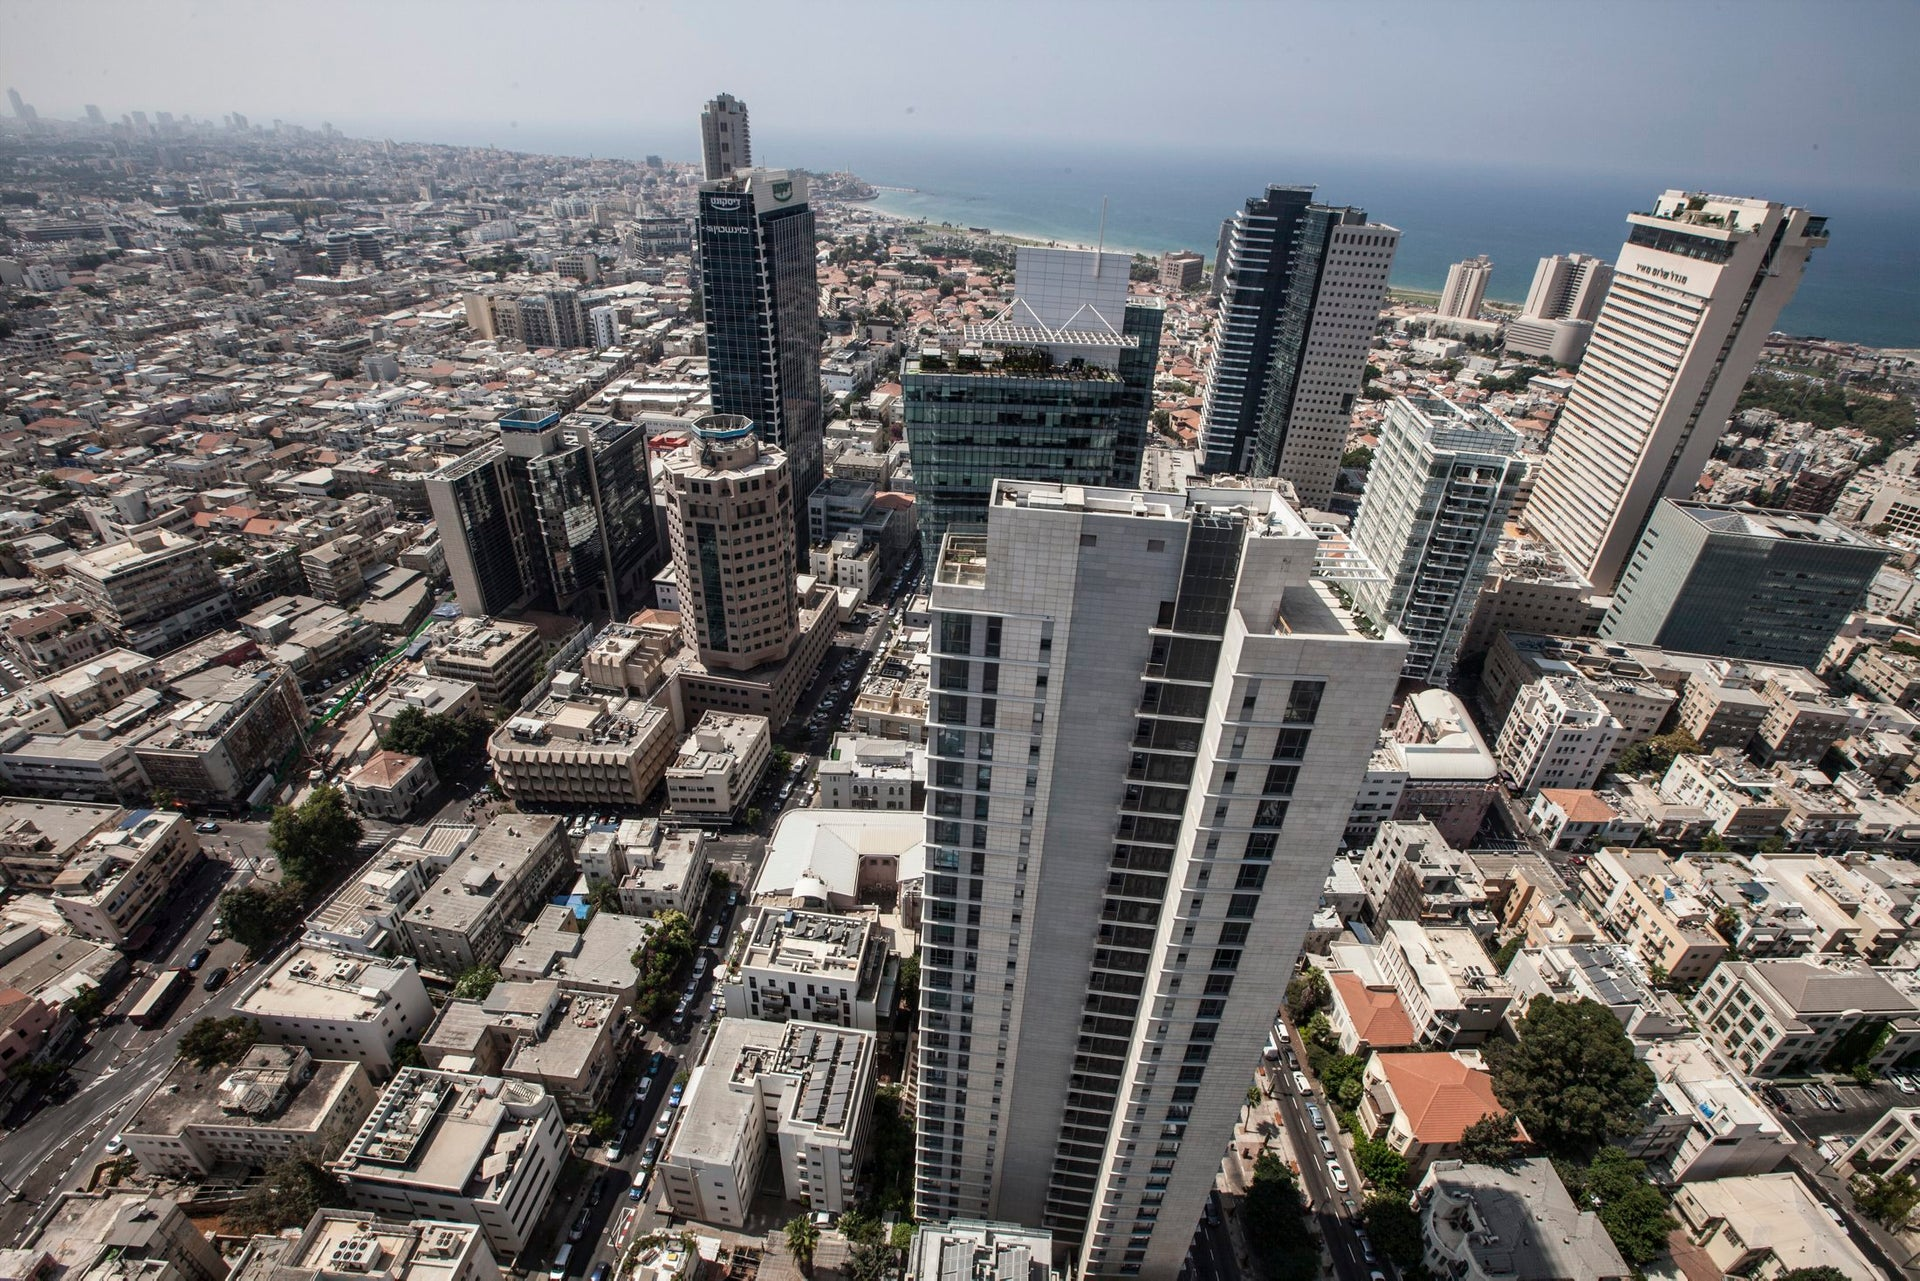 The view of southern Tel Aviv from the tower's penthouse.